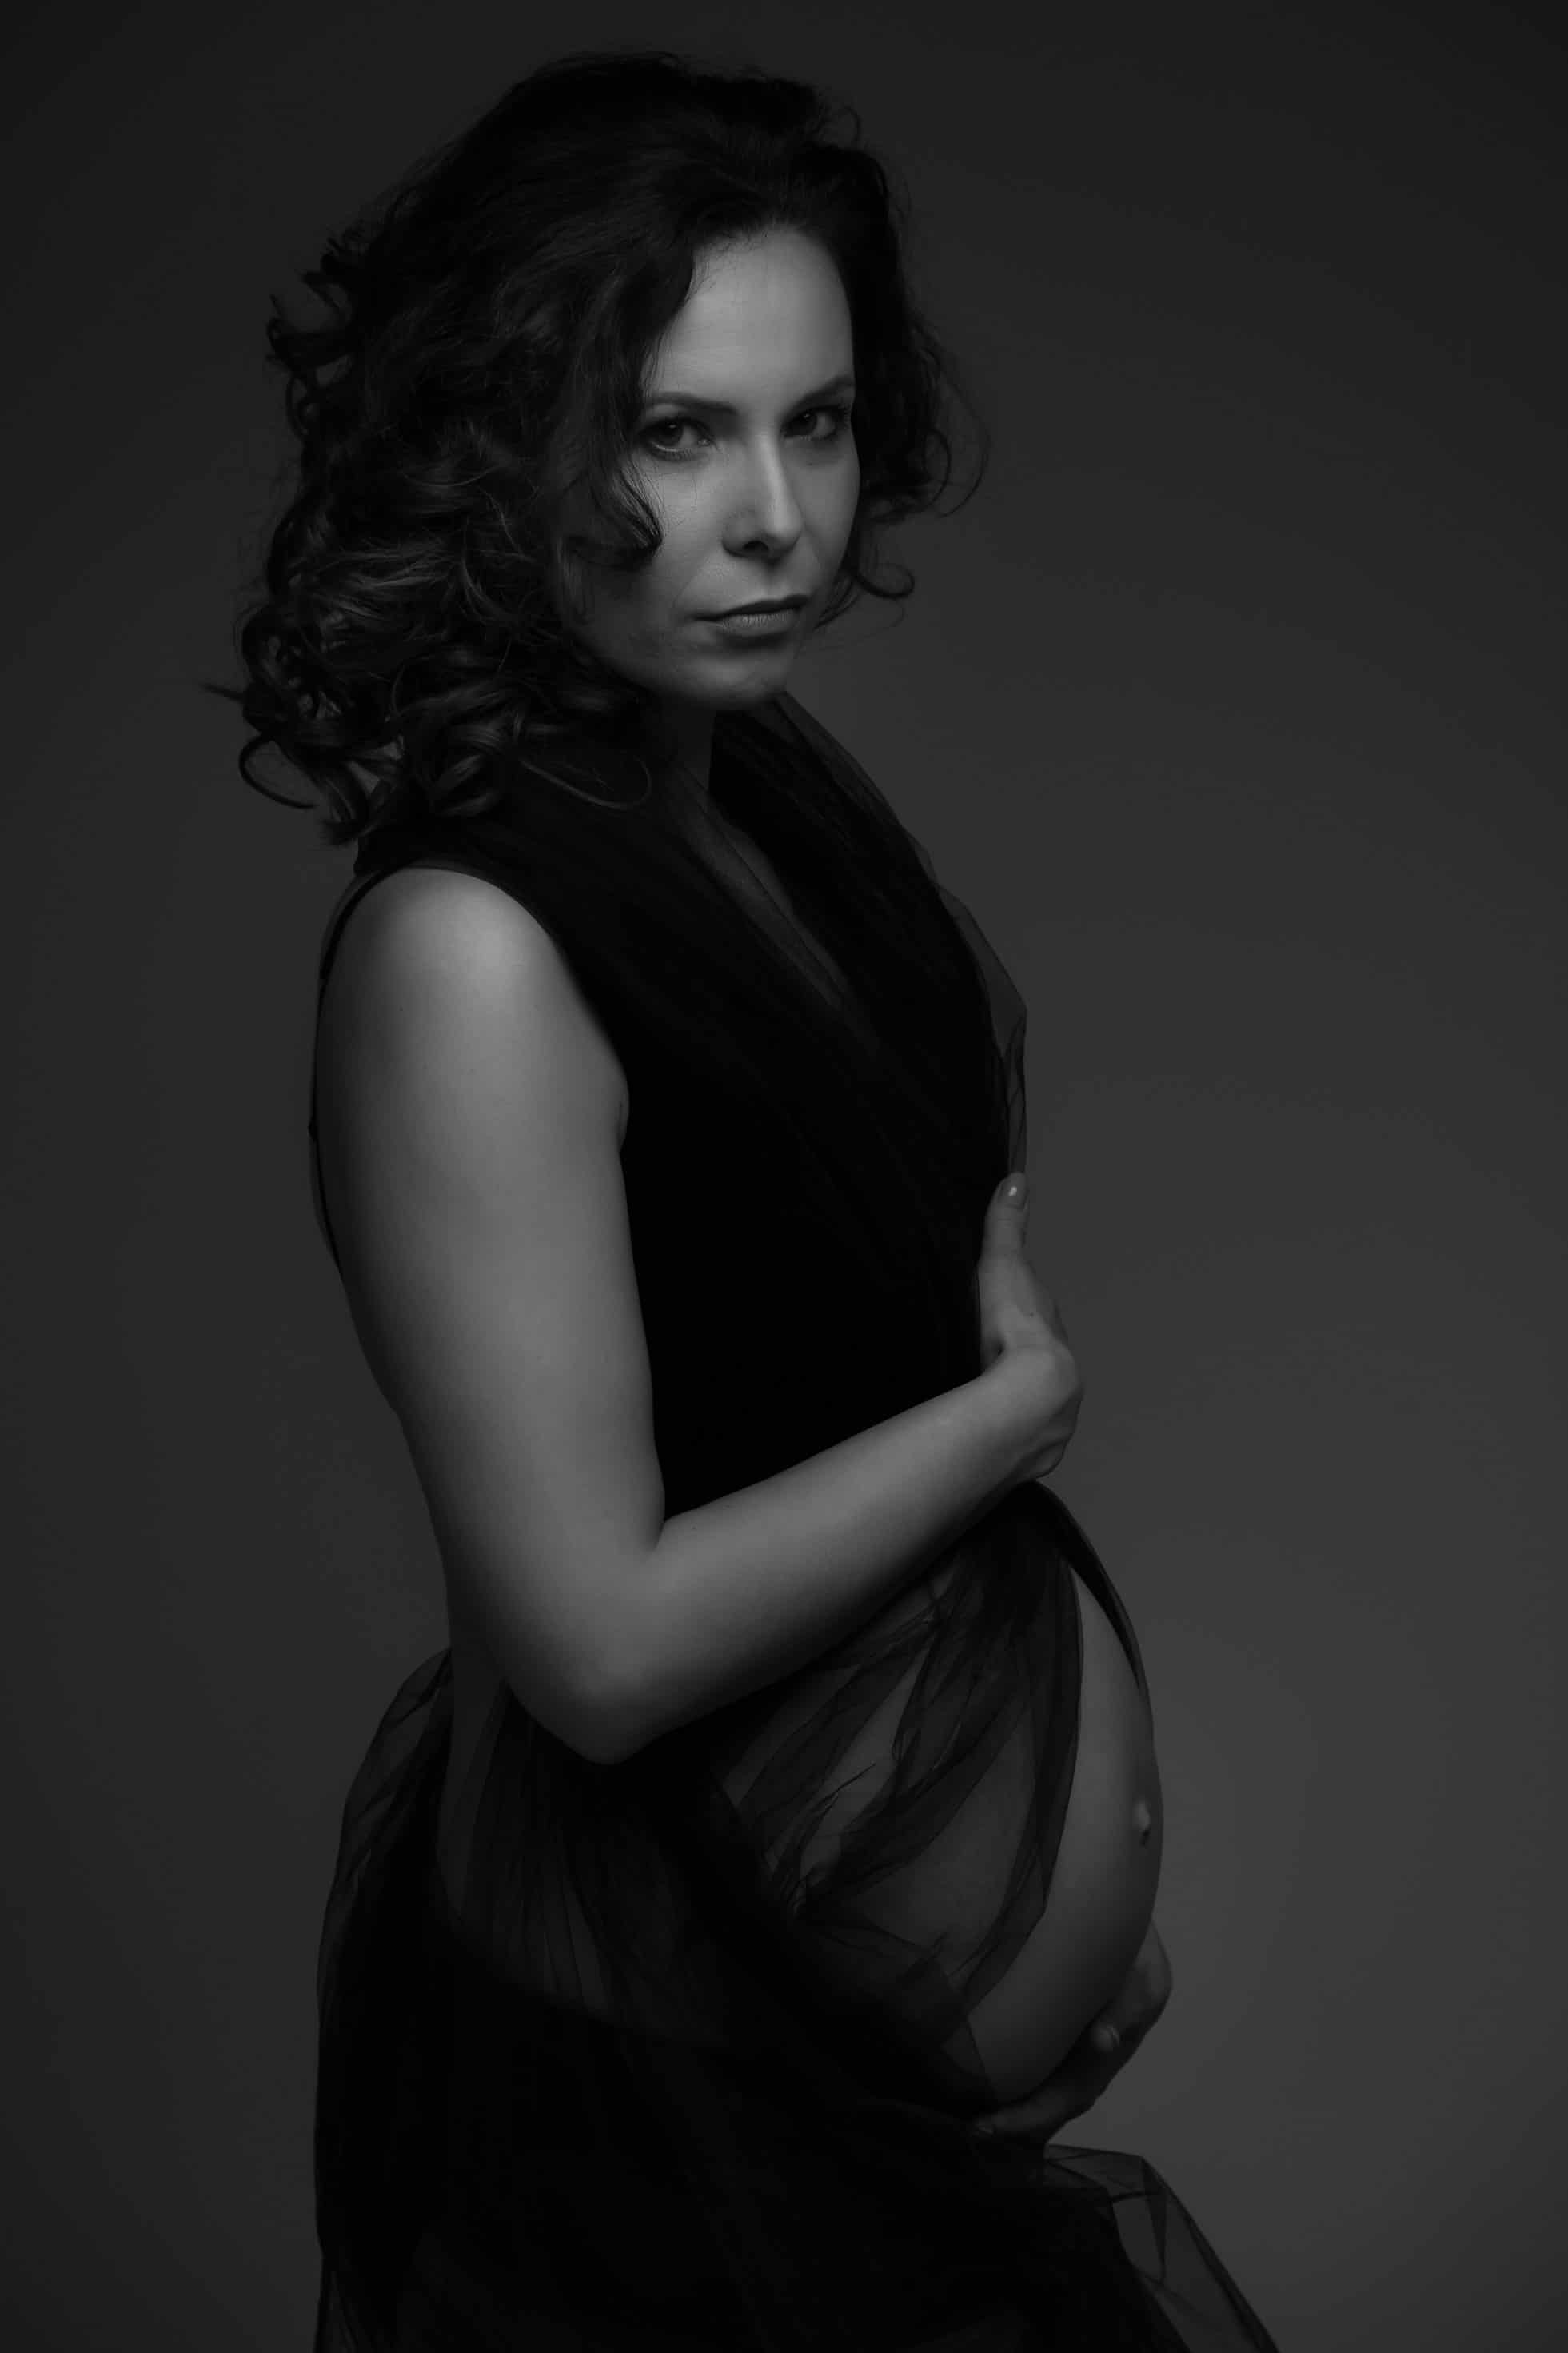 classic black and white moody maternity photo